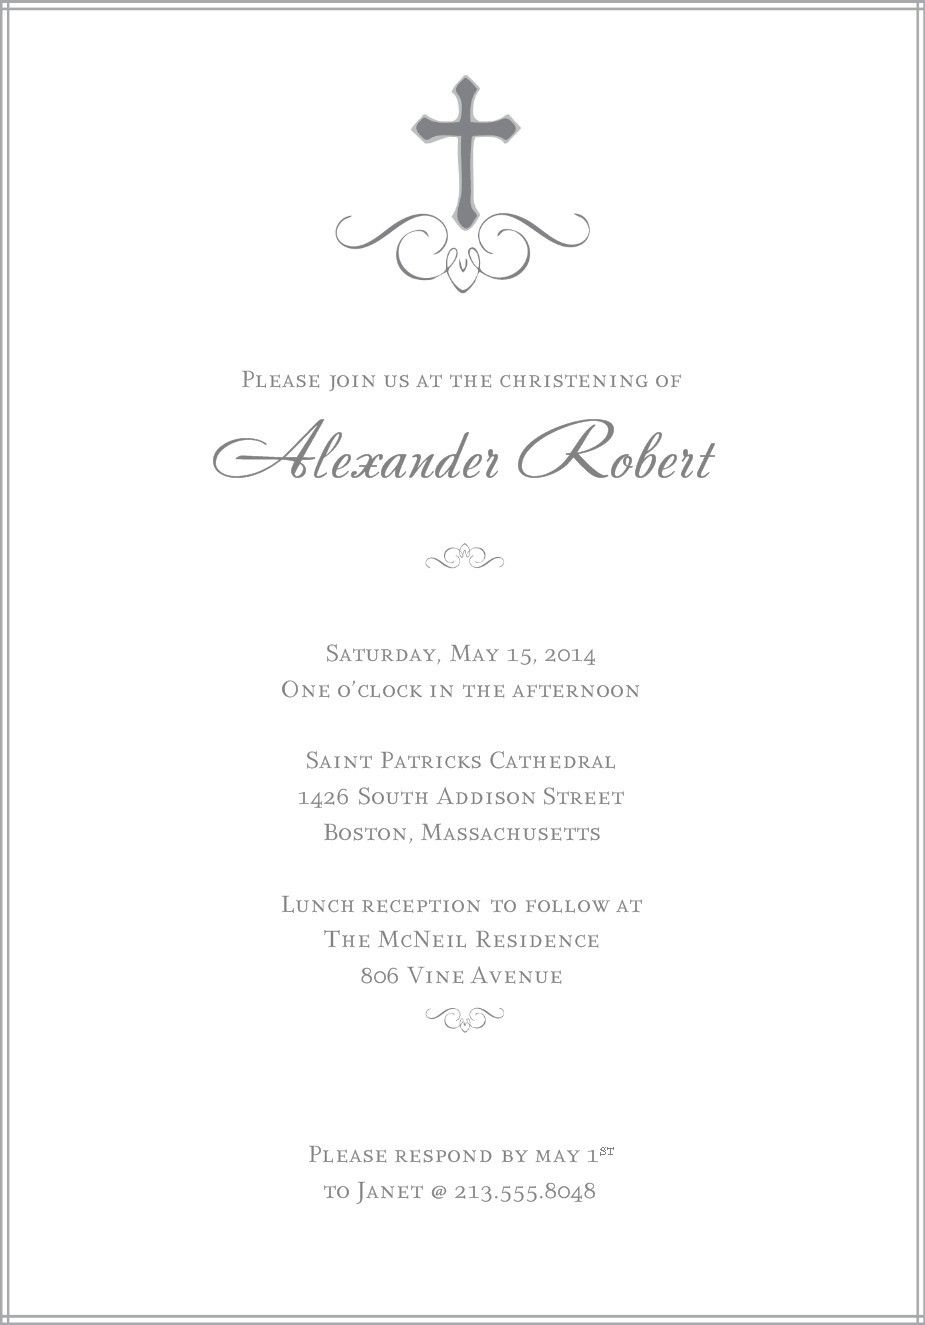 Baptism Invitations Templates Free Download | Gracelyn 07.04.18 - Free Printable First Communion Invitation Templates